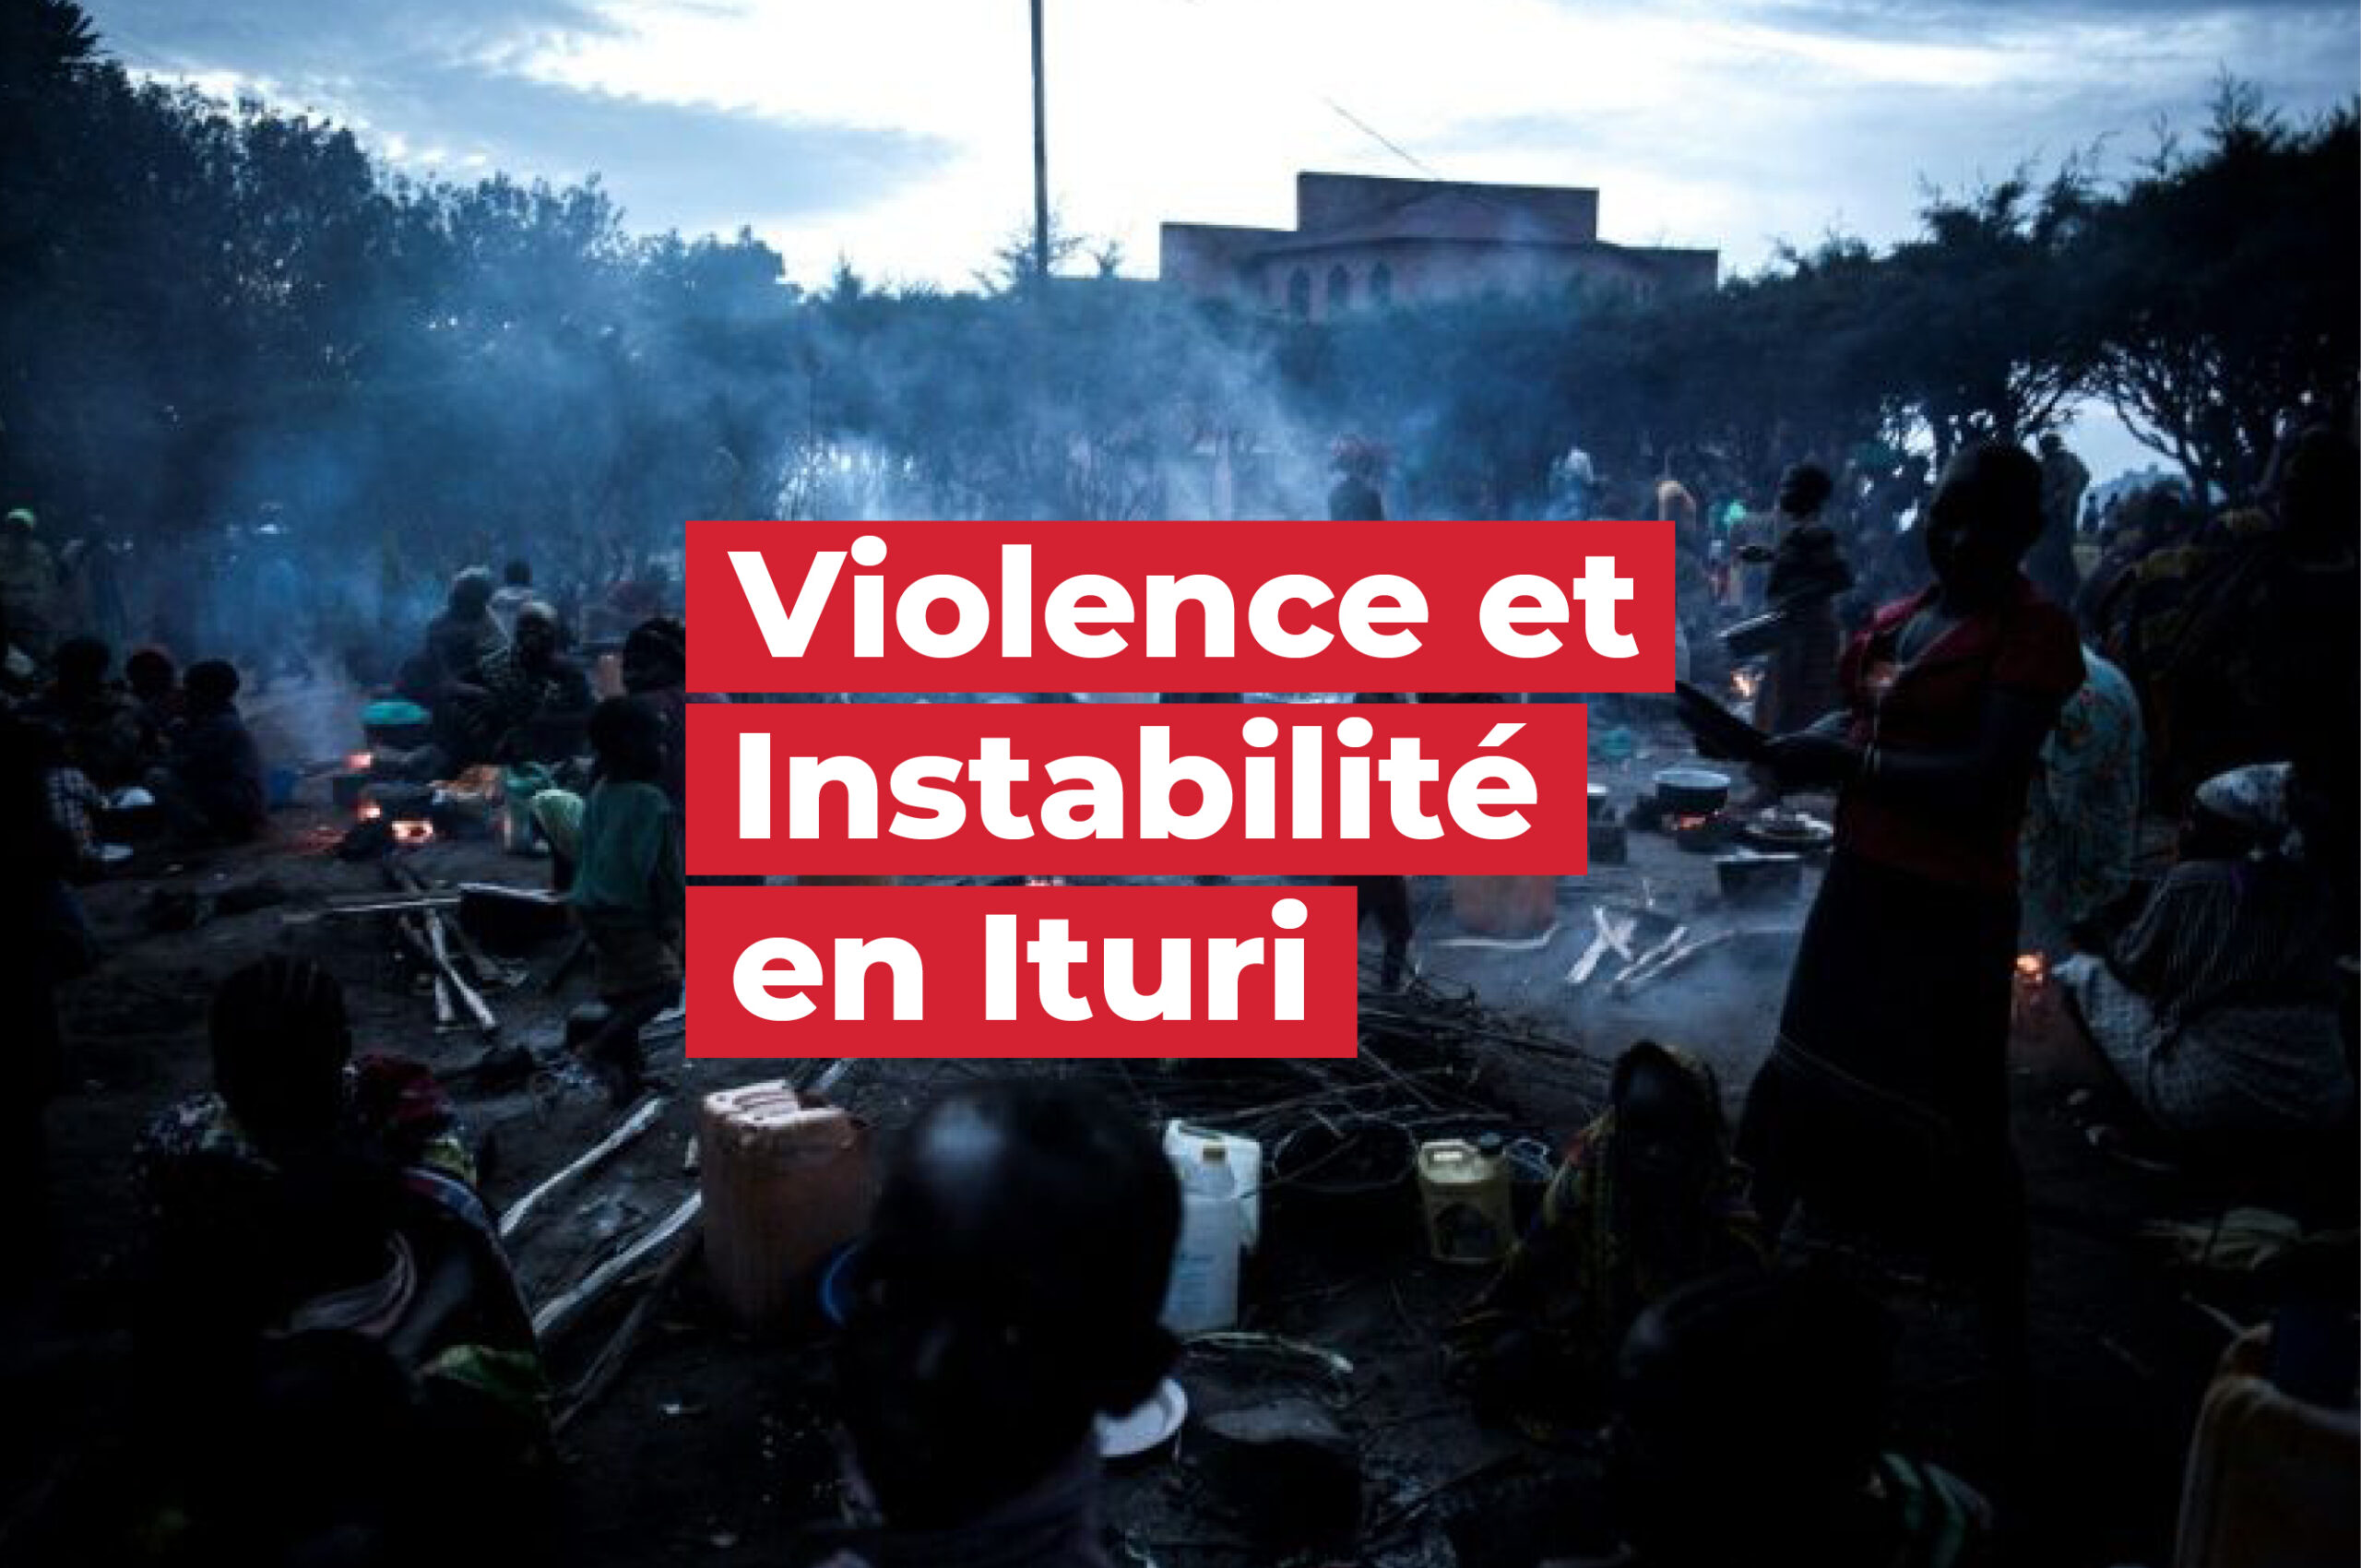 GIC_Violence and Instability in Ituri_FR_2